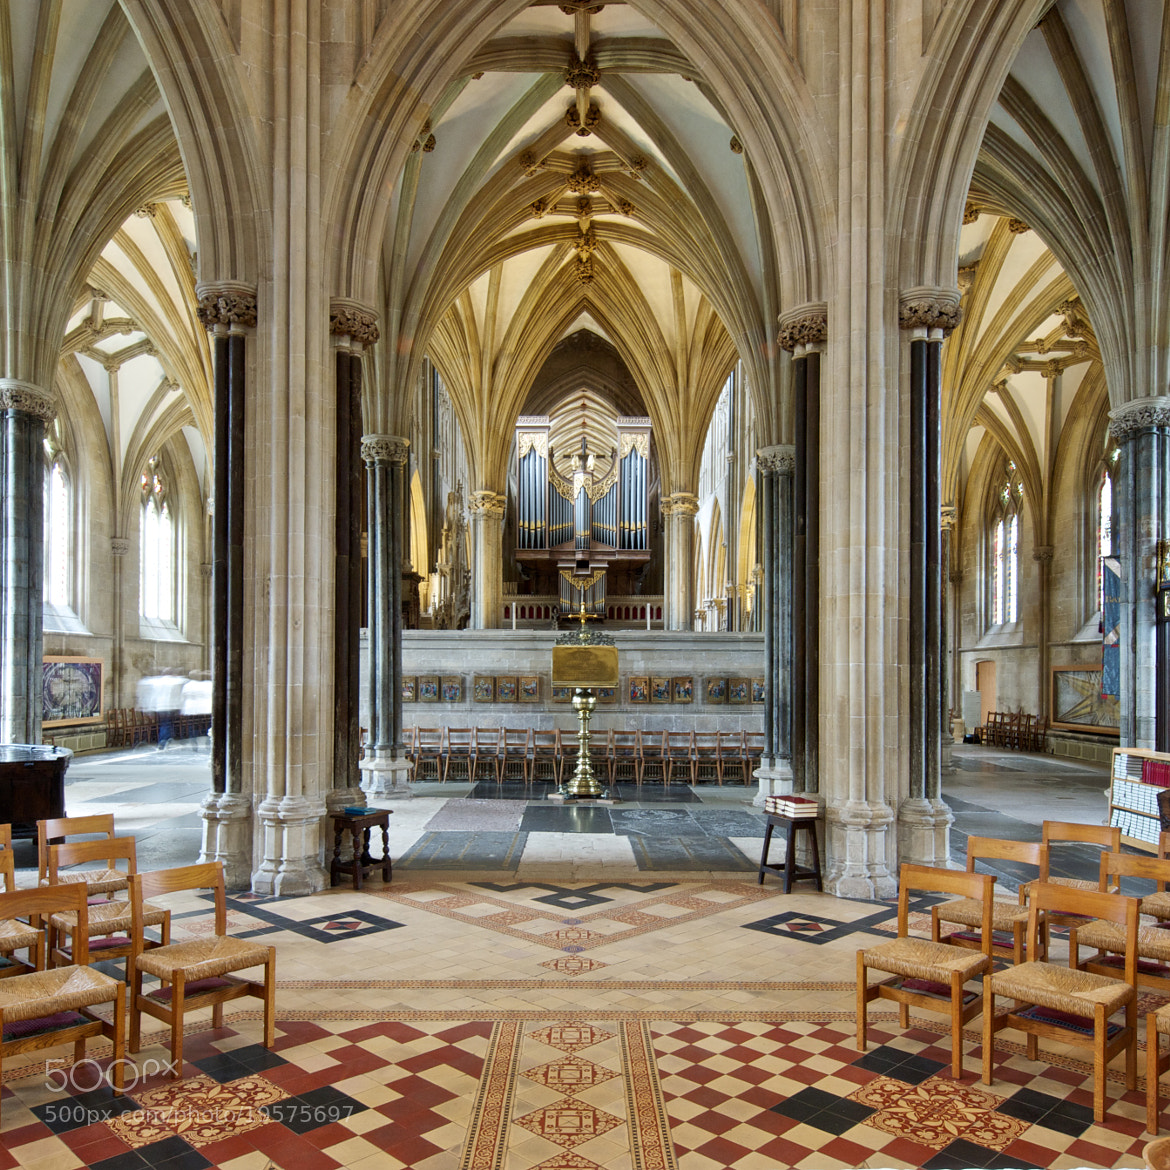 Photograph Complex spaces, Wells cathedral by Jon Sketchley on 500px